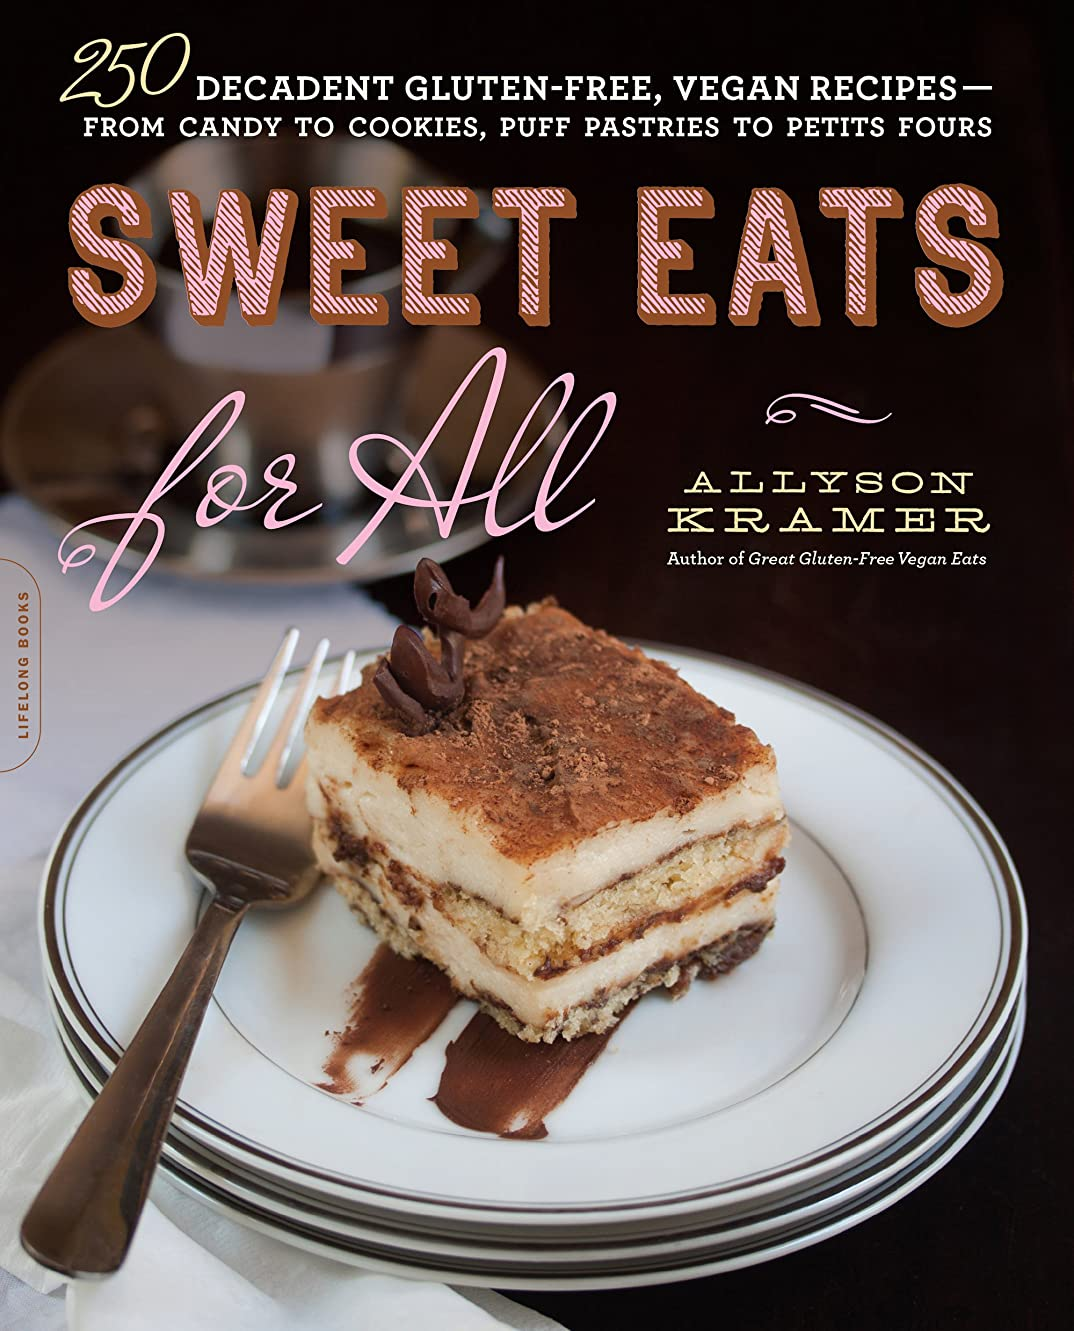 Sweet Eats for All: 250 Decadent Gluten-Free, Vegan Recipes--from Candy to Cookies, Puff Pastries to Petits Fours (English Edition)